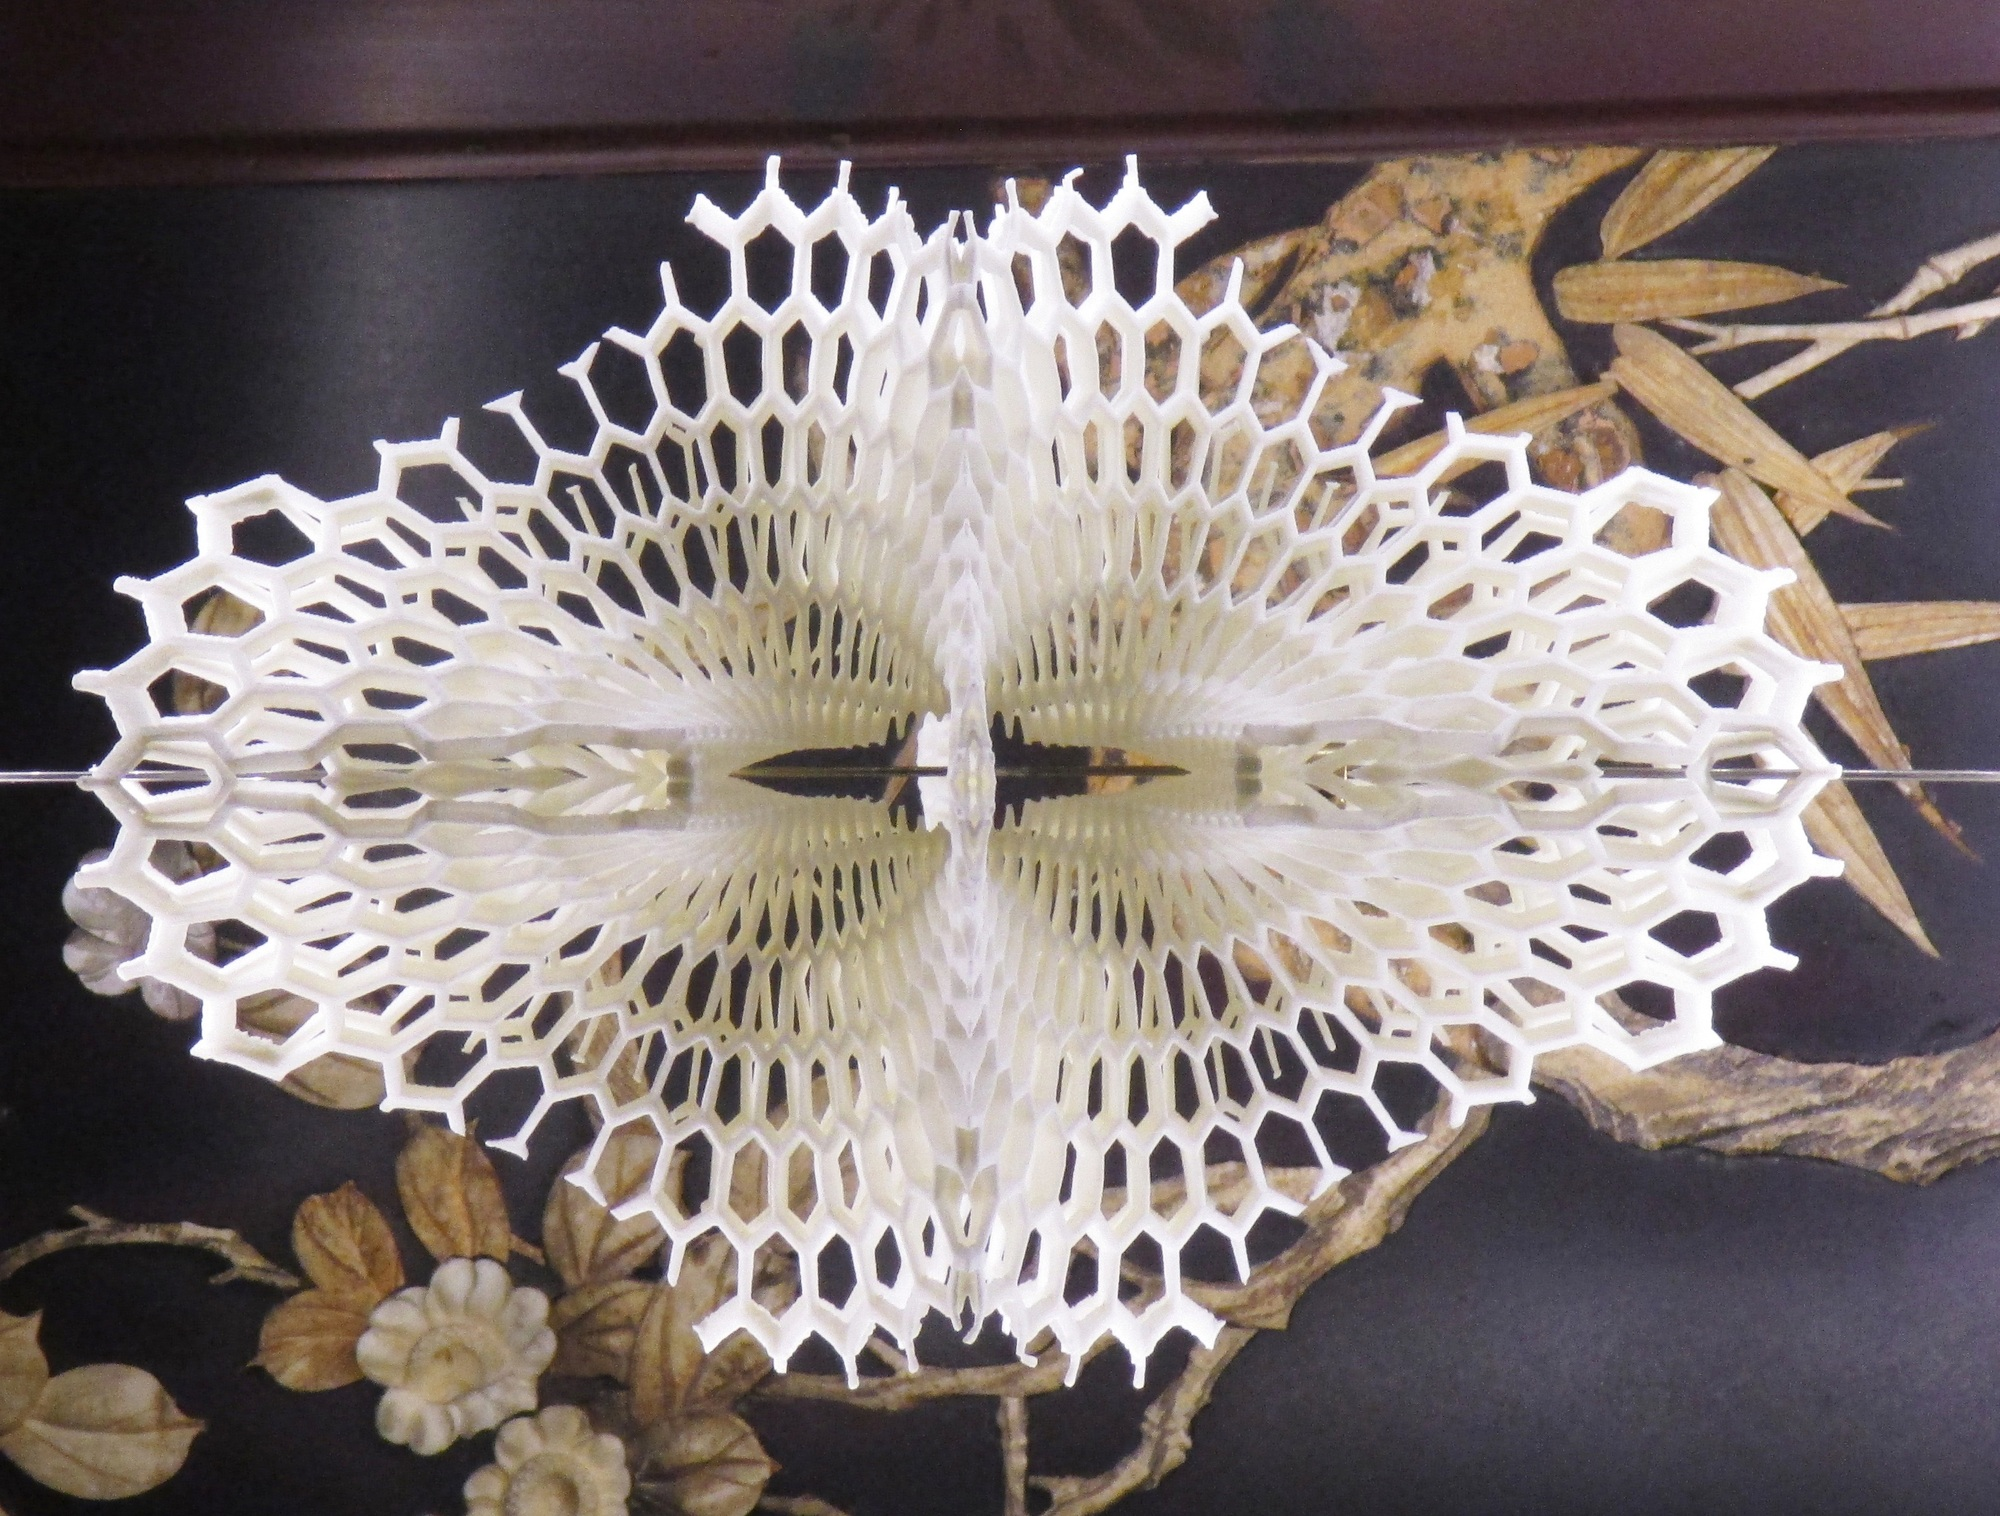 Margot Krasojević Architects Unveils Lace-Like 3D Printed Light Made of Recycled Plastic